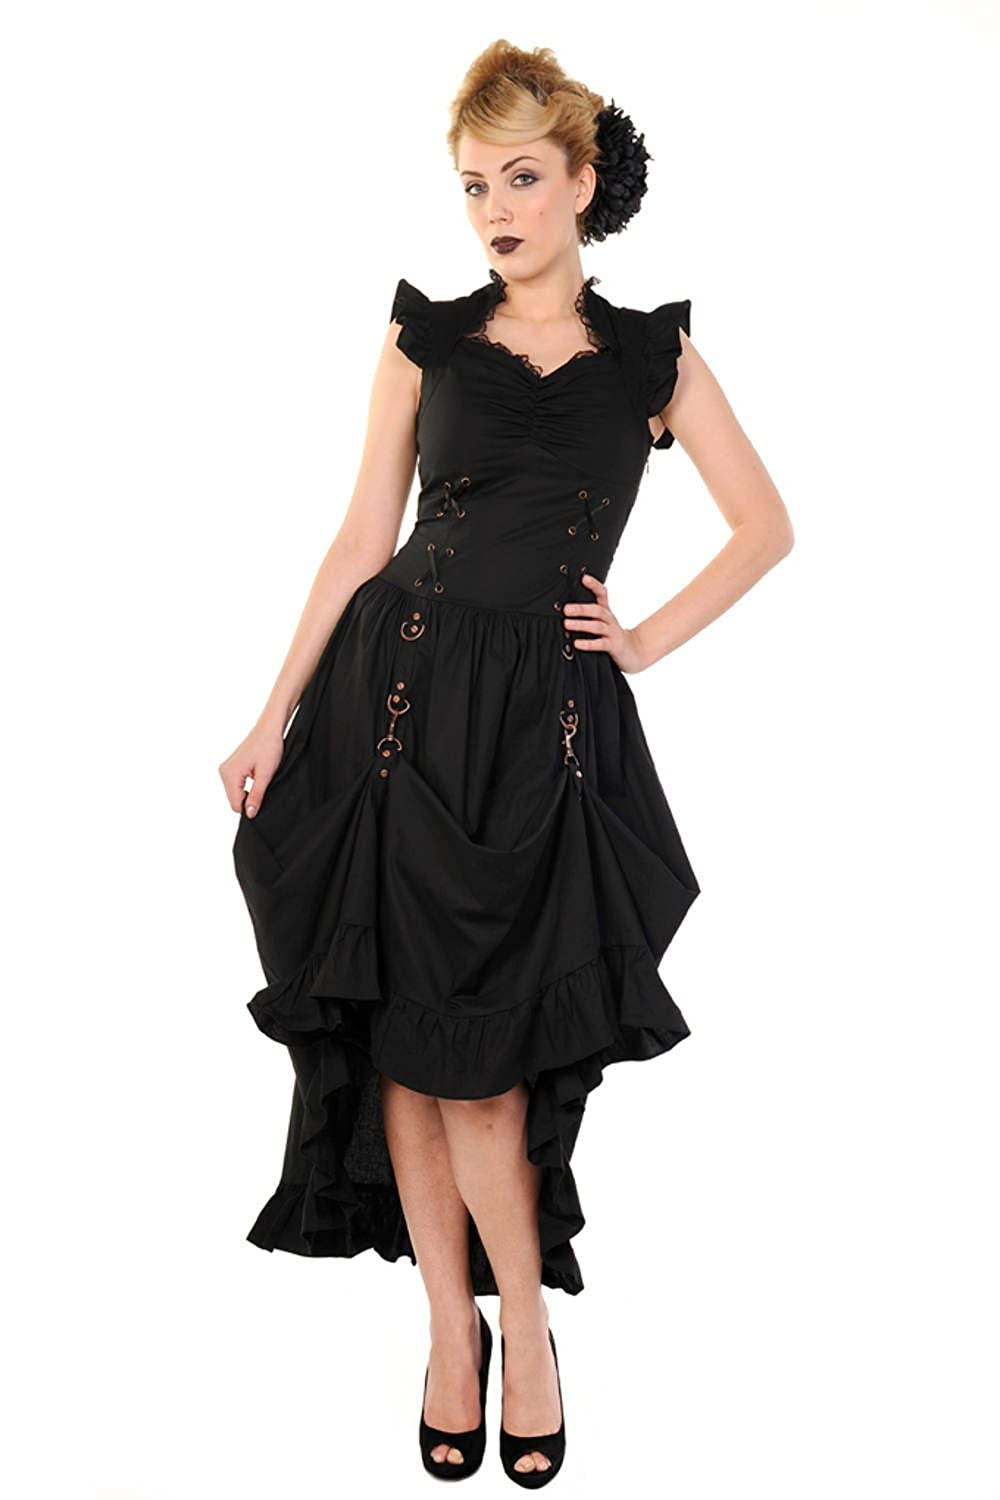 Steampunk Dresses | Women & Girl Costumes Banned Black Gothic Copper Victorian Dress $89.50 AT vintagedancer.com